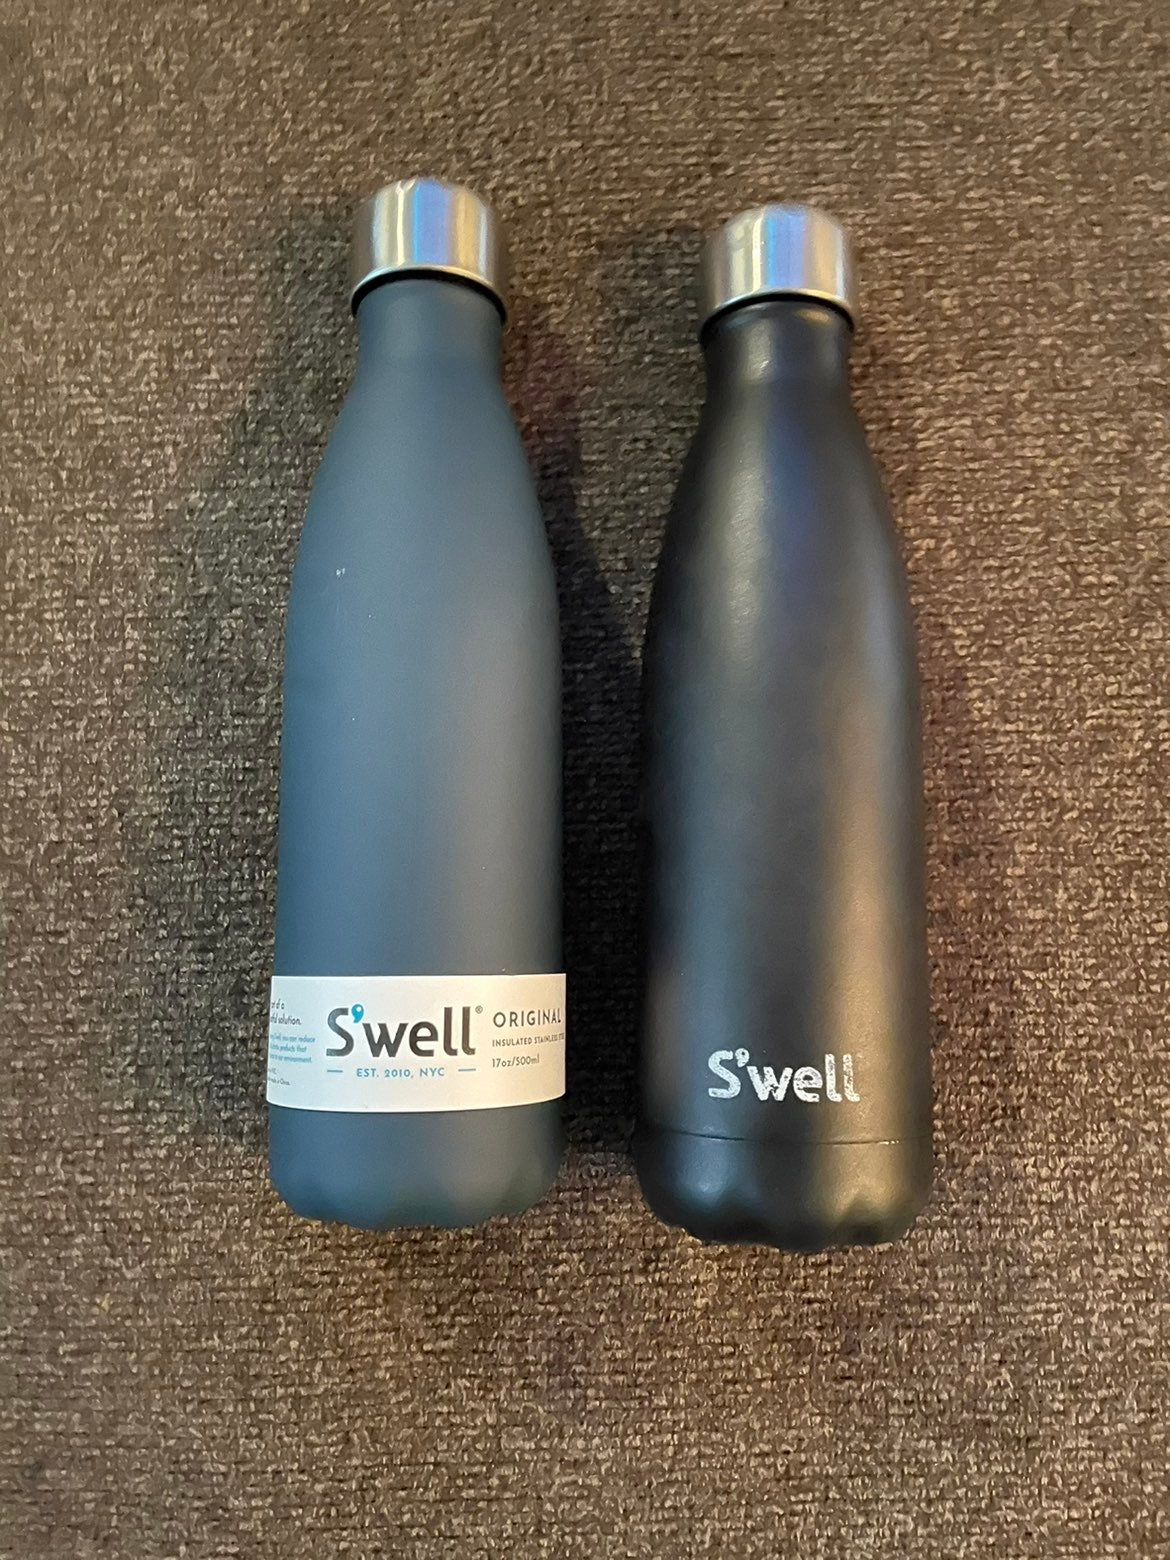 Swell water bottles